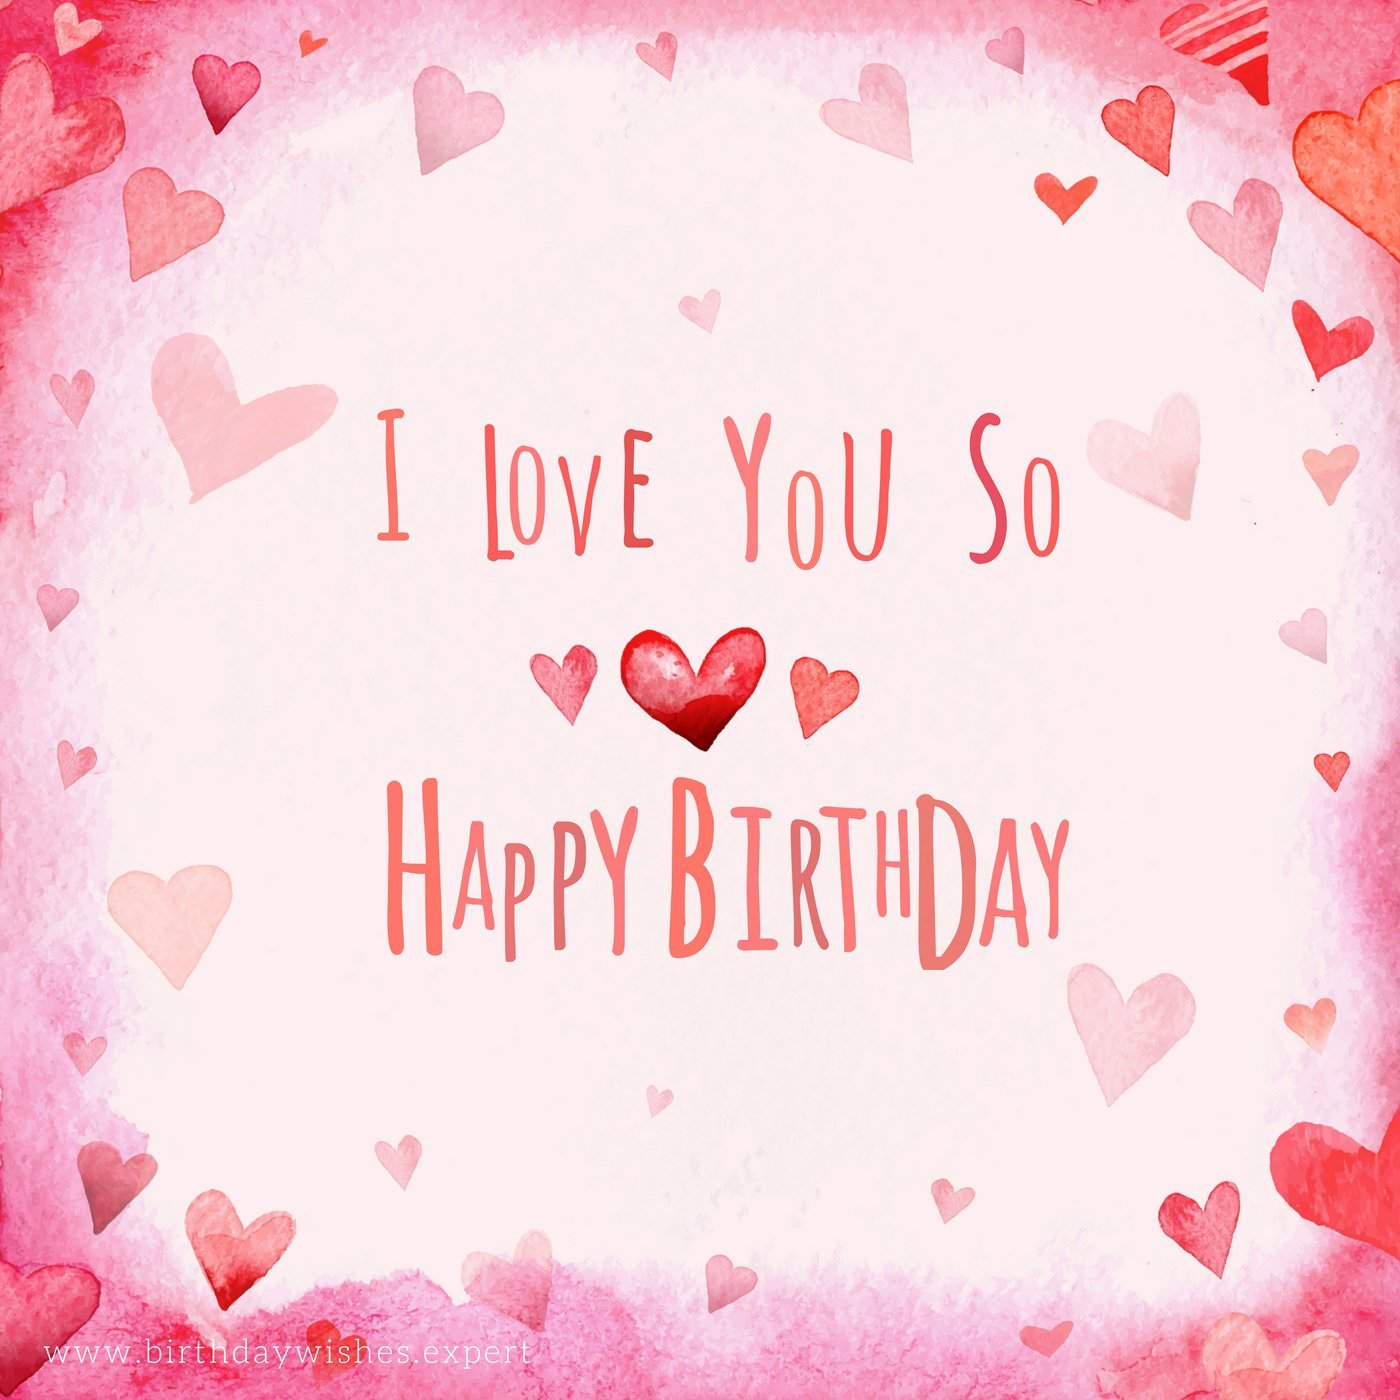 Happy Birthday Love Quotes For Her Top 70 Birthday Wishes For Your Wife